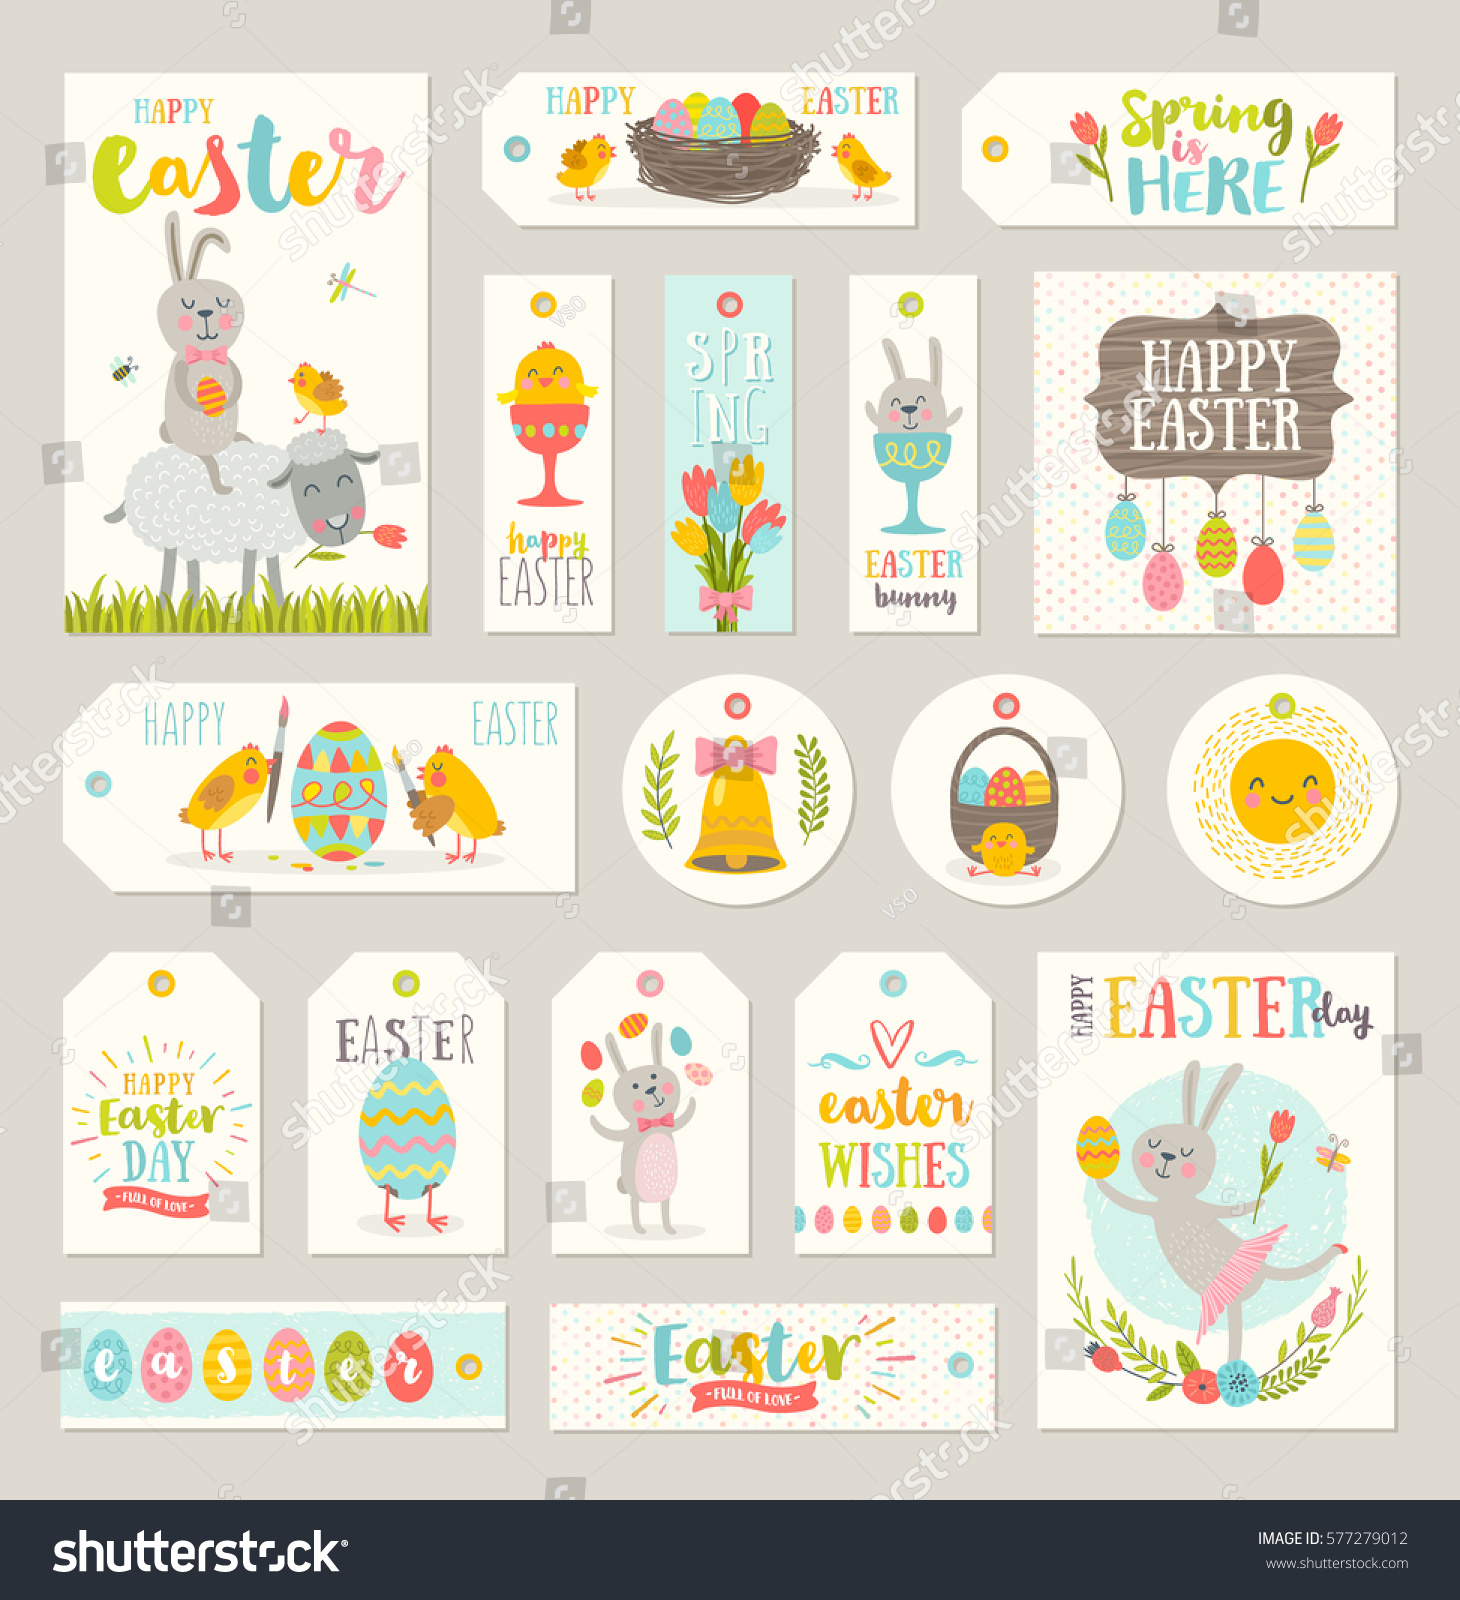 Set easter gift tags labels cute stock vector 577279012 shutterstock set of easter gift tags and labels with cute cartoon characters and type design easter negle Choice Image